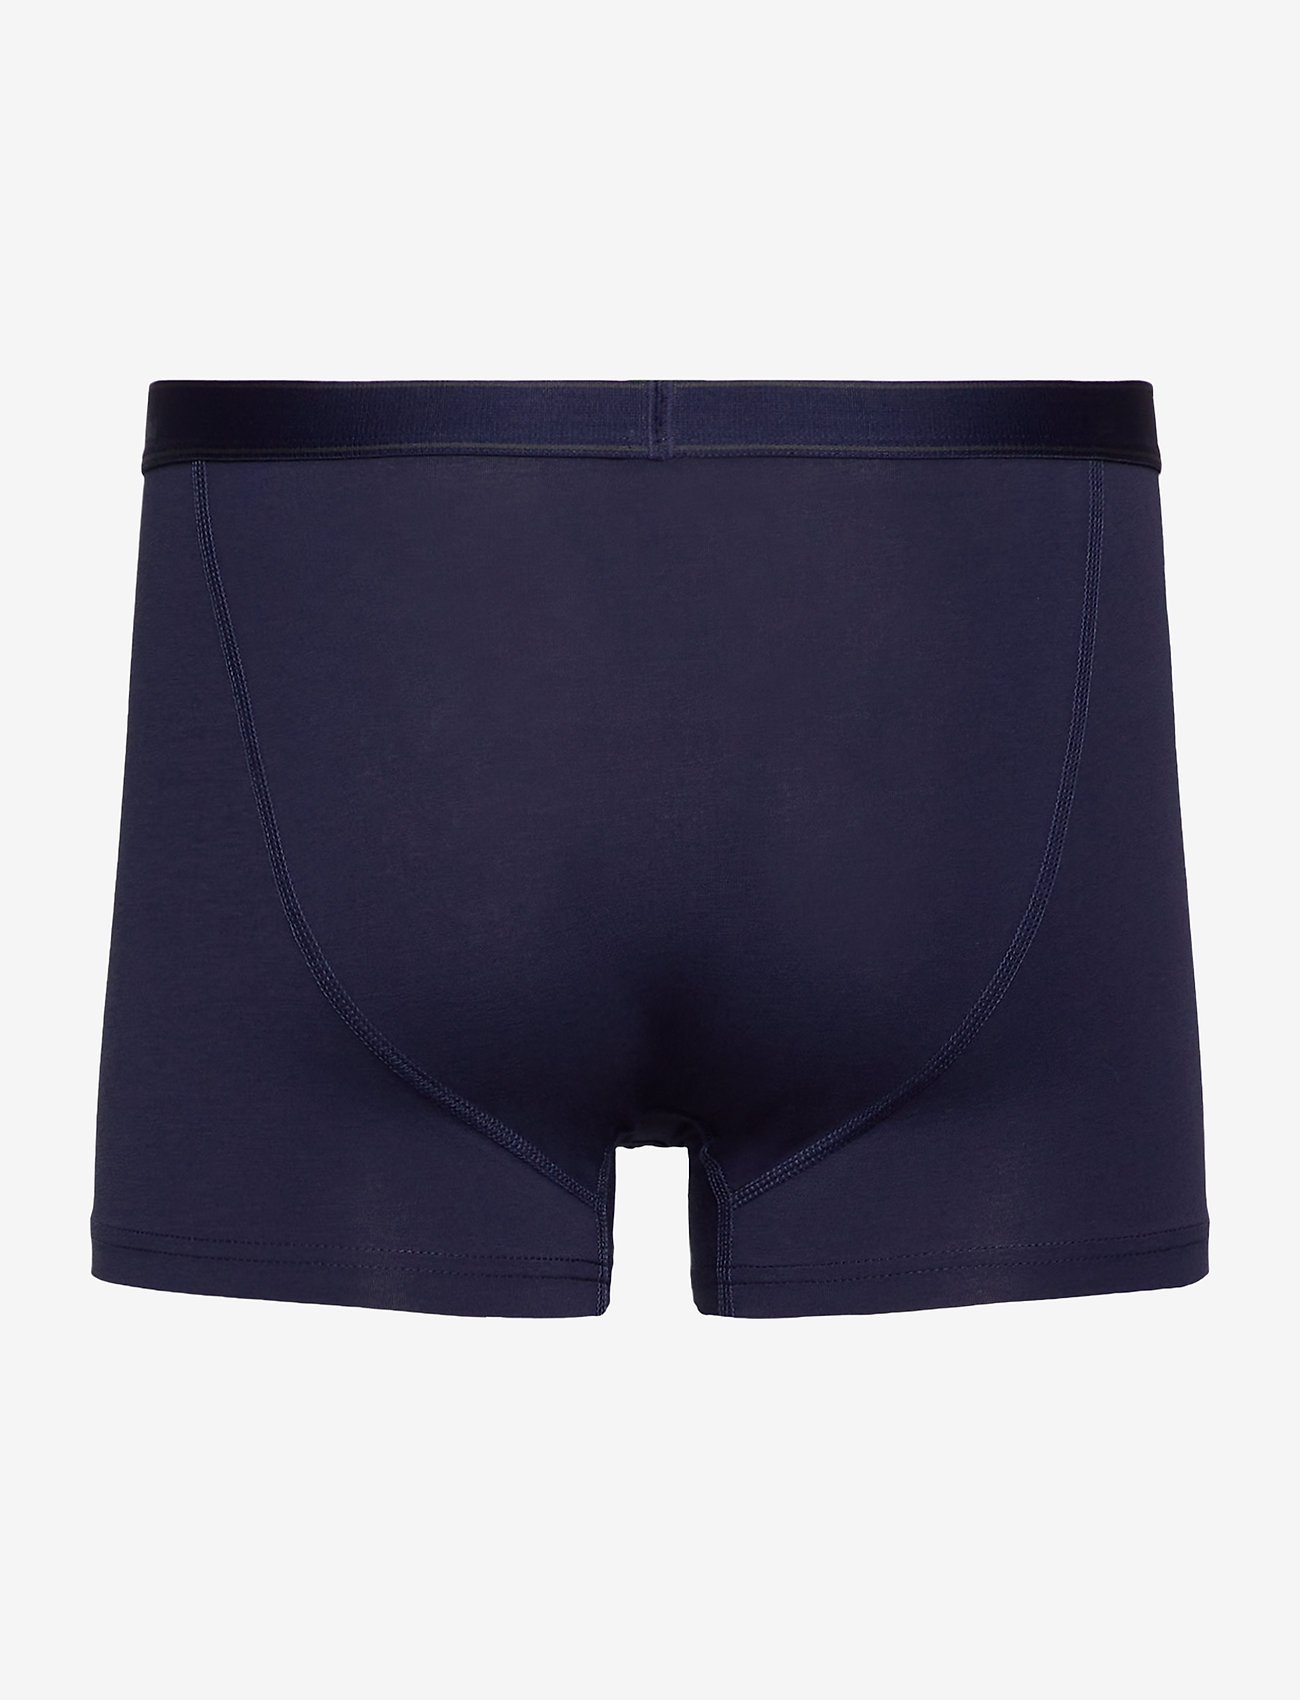 Greater Than A - GTA STEEL EDGE BOXER - boxers - navy - 1